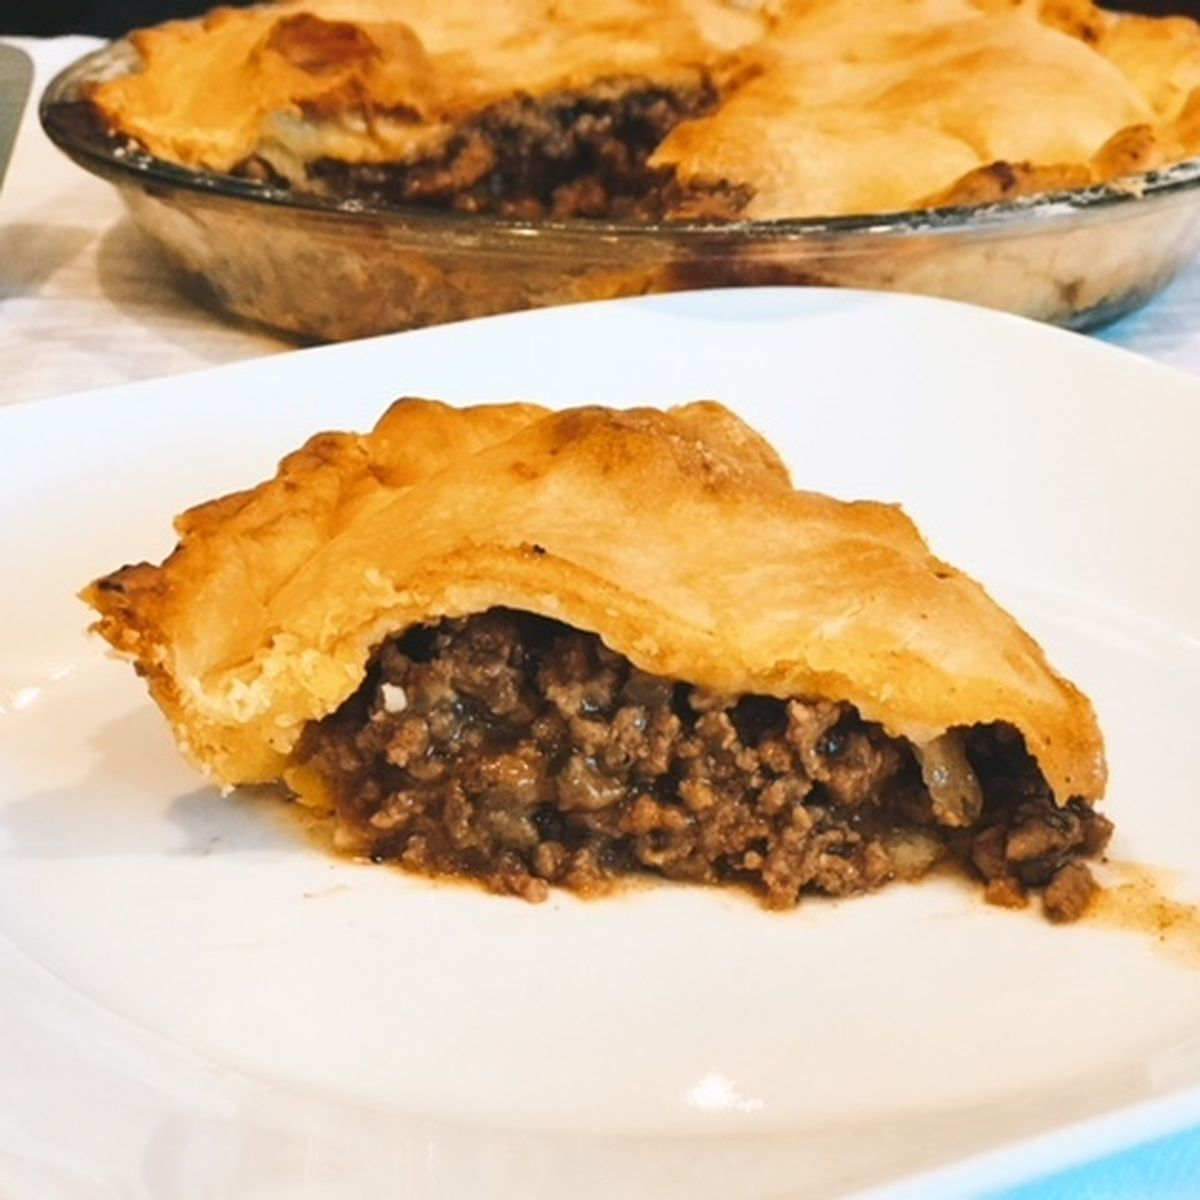 Best Meat Pie Recipe How To Make Homemade Ground Beef Pie